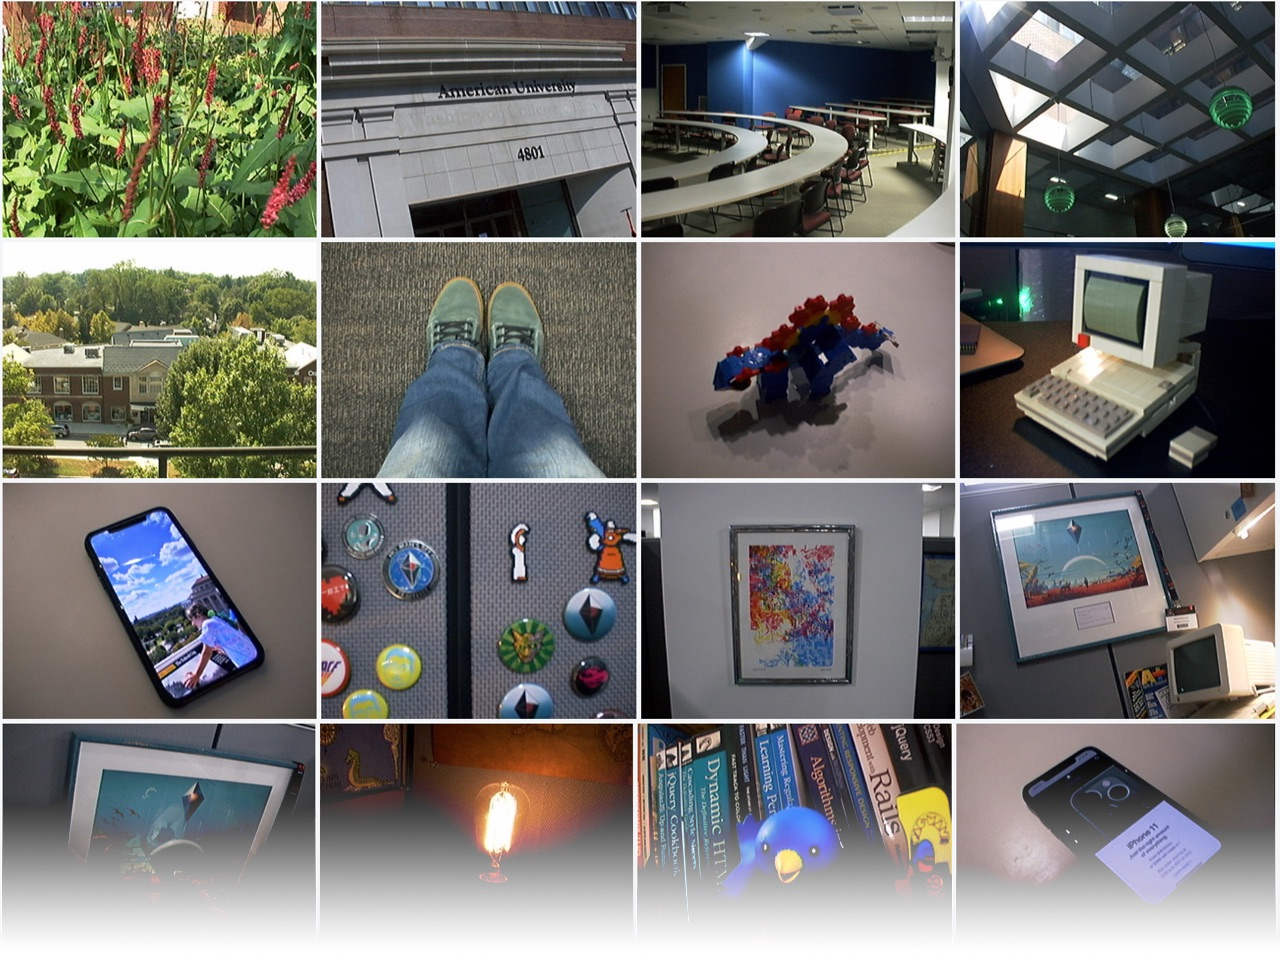 preview grid of photos taken by QuickTake 200